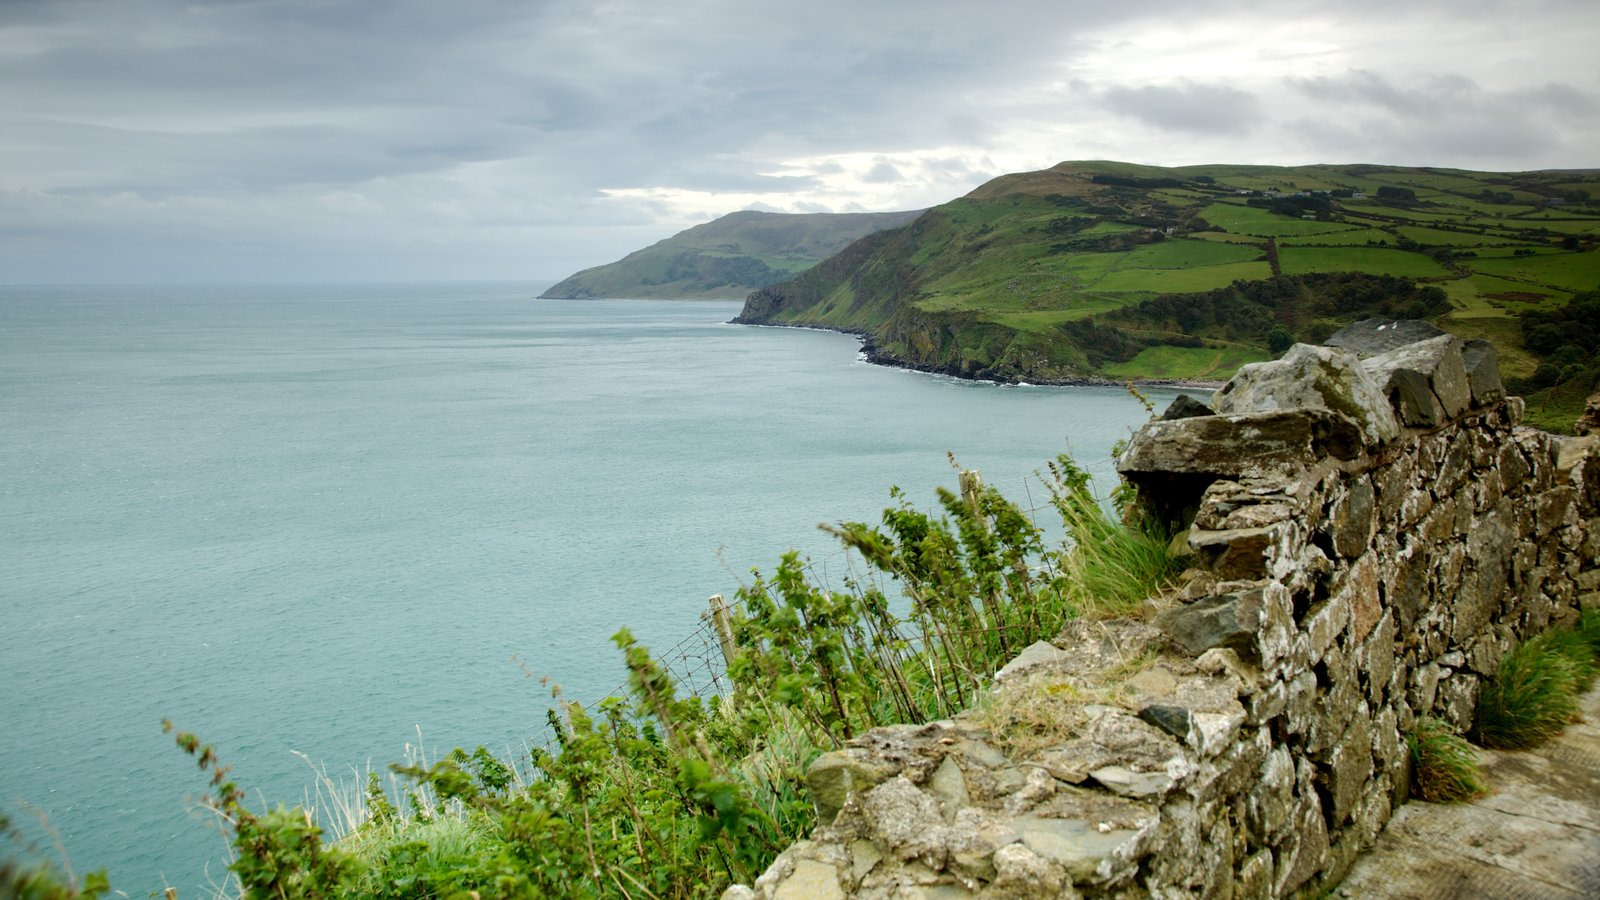 Torr Head showing views, tranquil scenes and rocky coastline